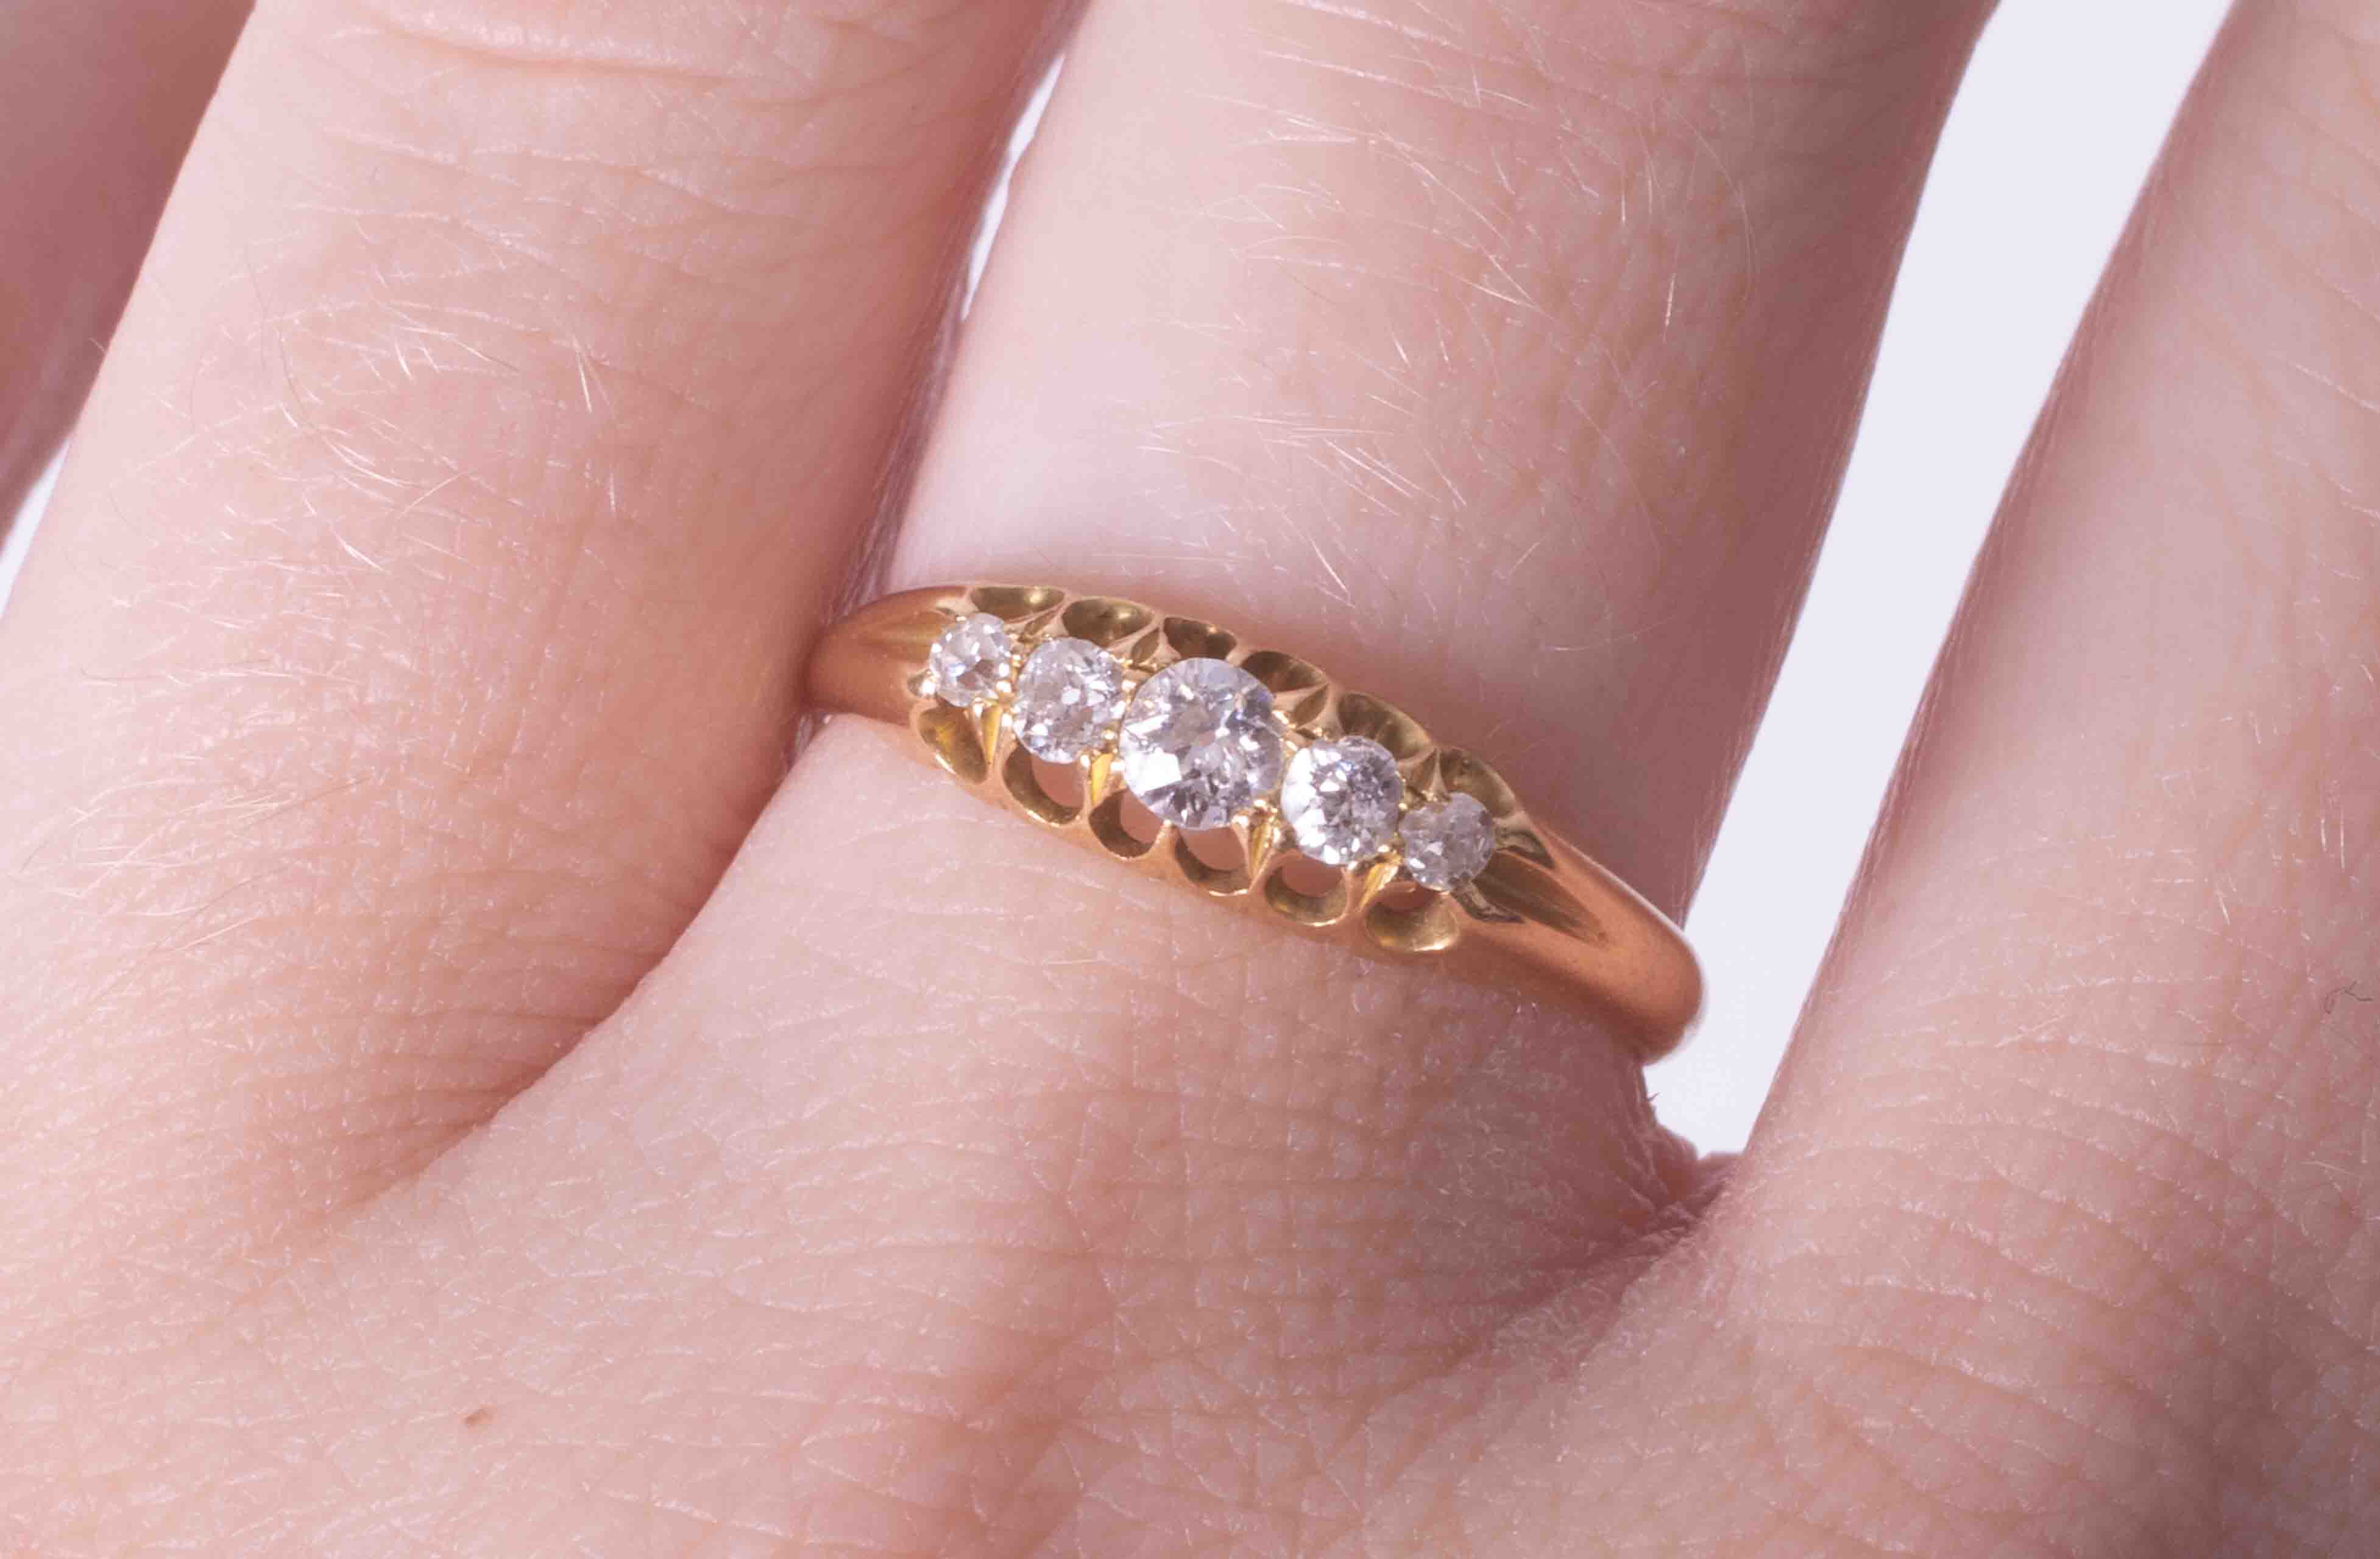 An antique 18ct yellow gold five stone ring set with approx. 0.35 carats of old round cut - Image 2 of 2